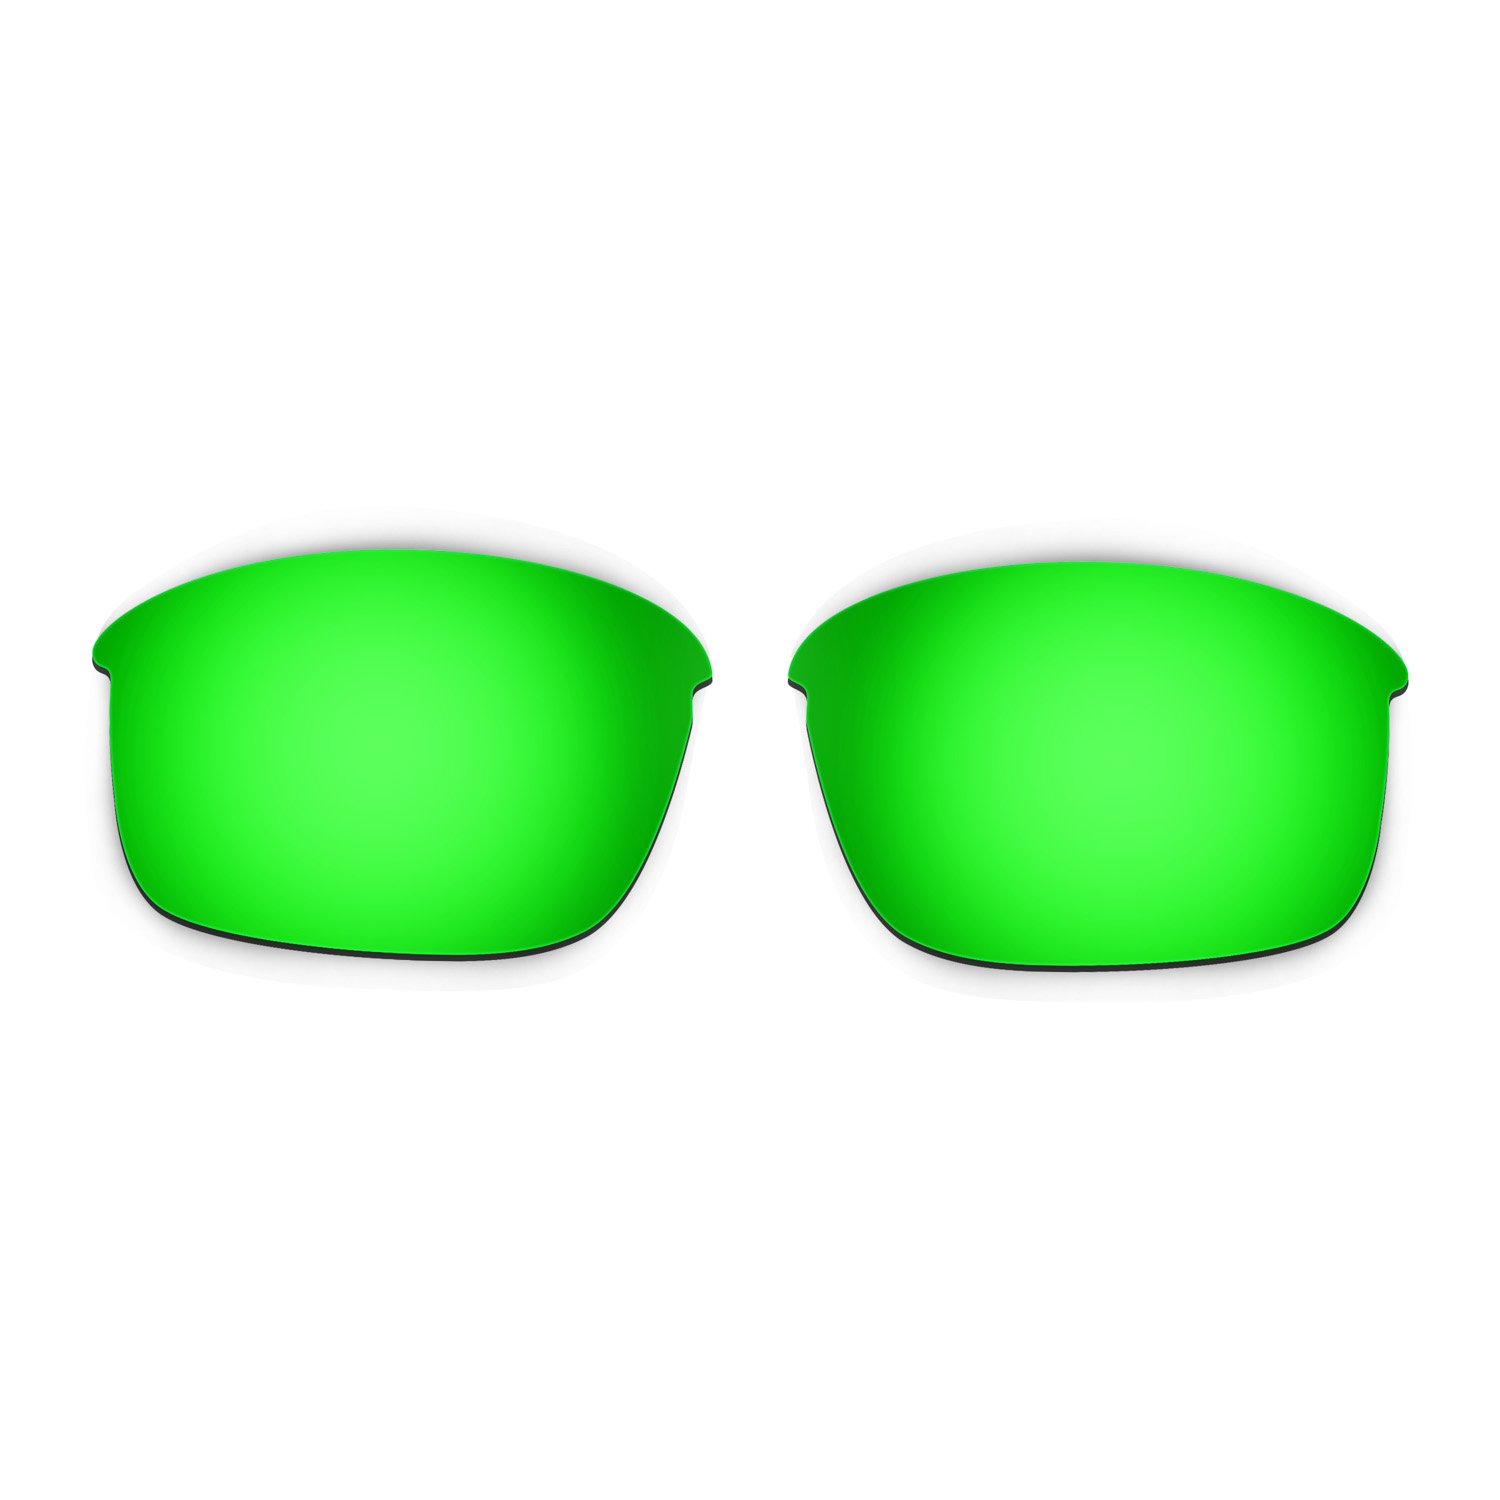 HKUCO Mens Replacement Lenses For Oakley Flak Jacket Red/Blue/Black/24K Gold/Emerald Green Sunglasses GyFPrl